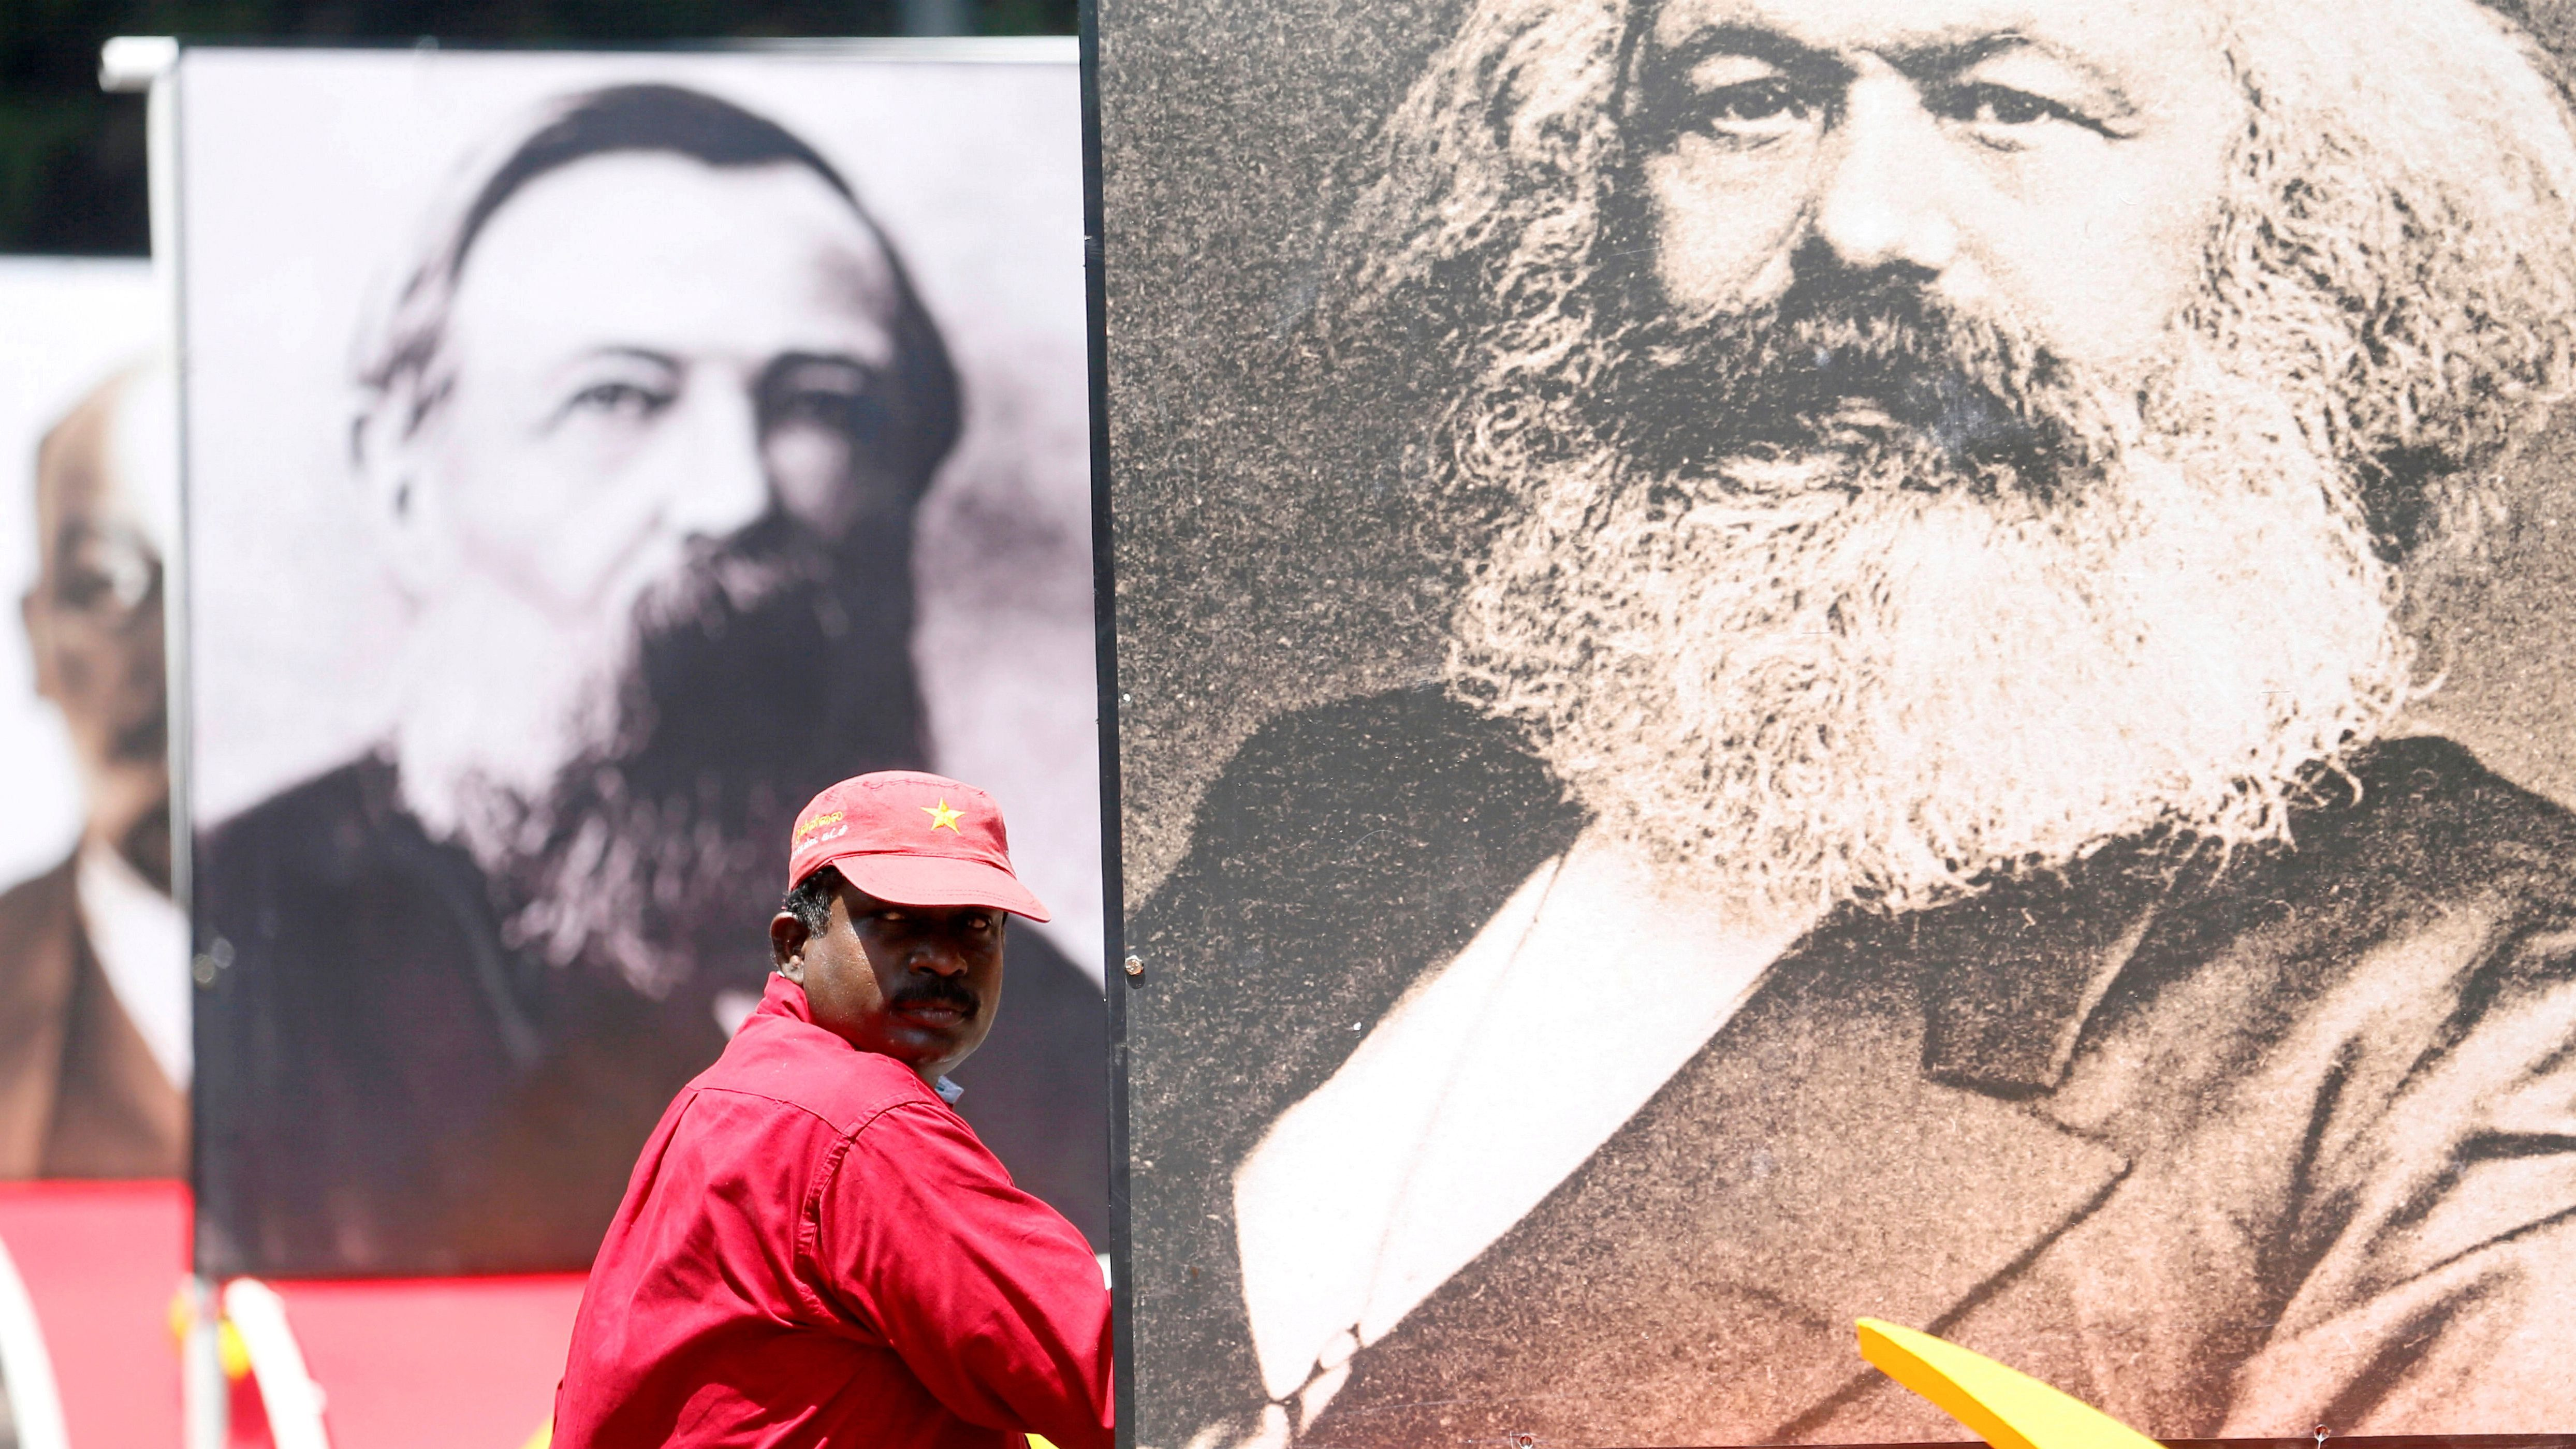 A man looks on next to an image of Karl Marx during a May Day rally organized by Front Line Socialist Party in Colombo, Sri Lanka May 1,2018.